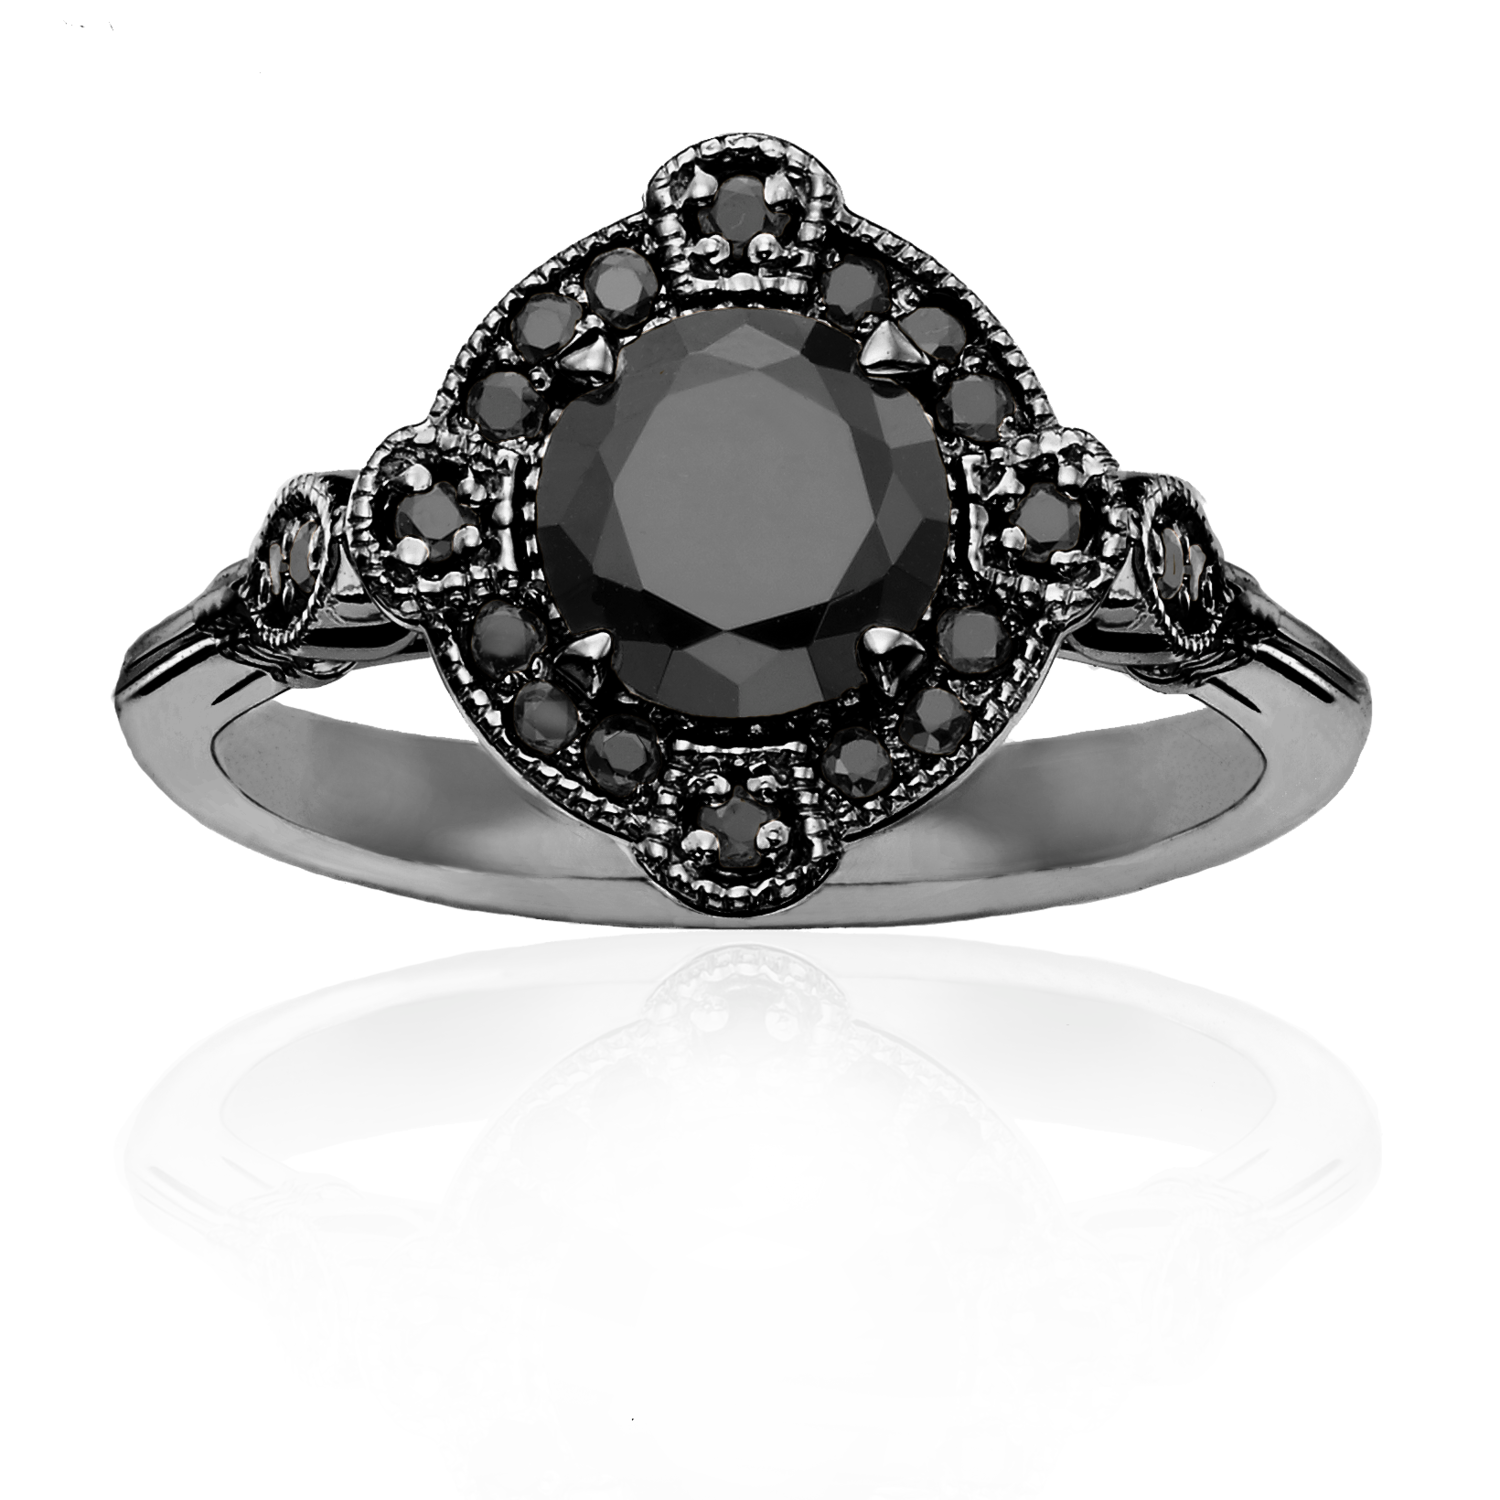 NEW GM Blk Dia Eng Ring